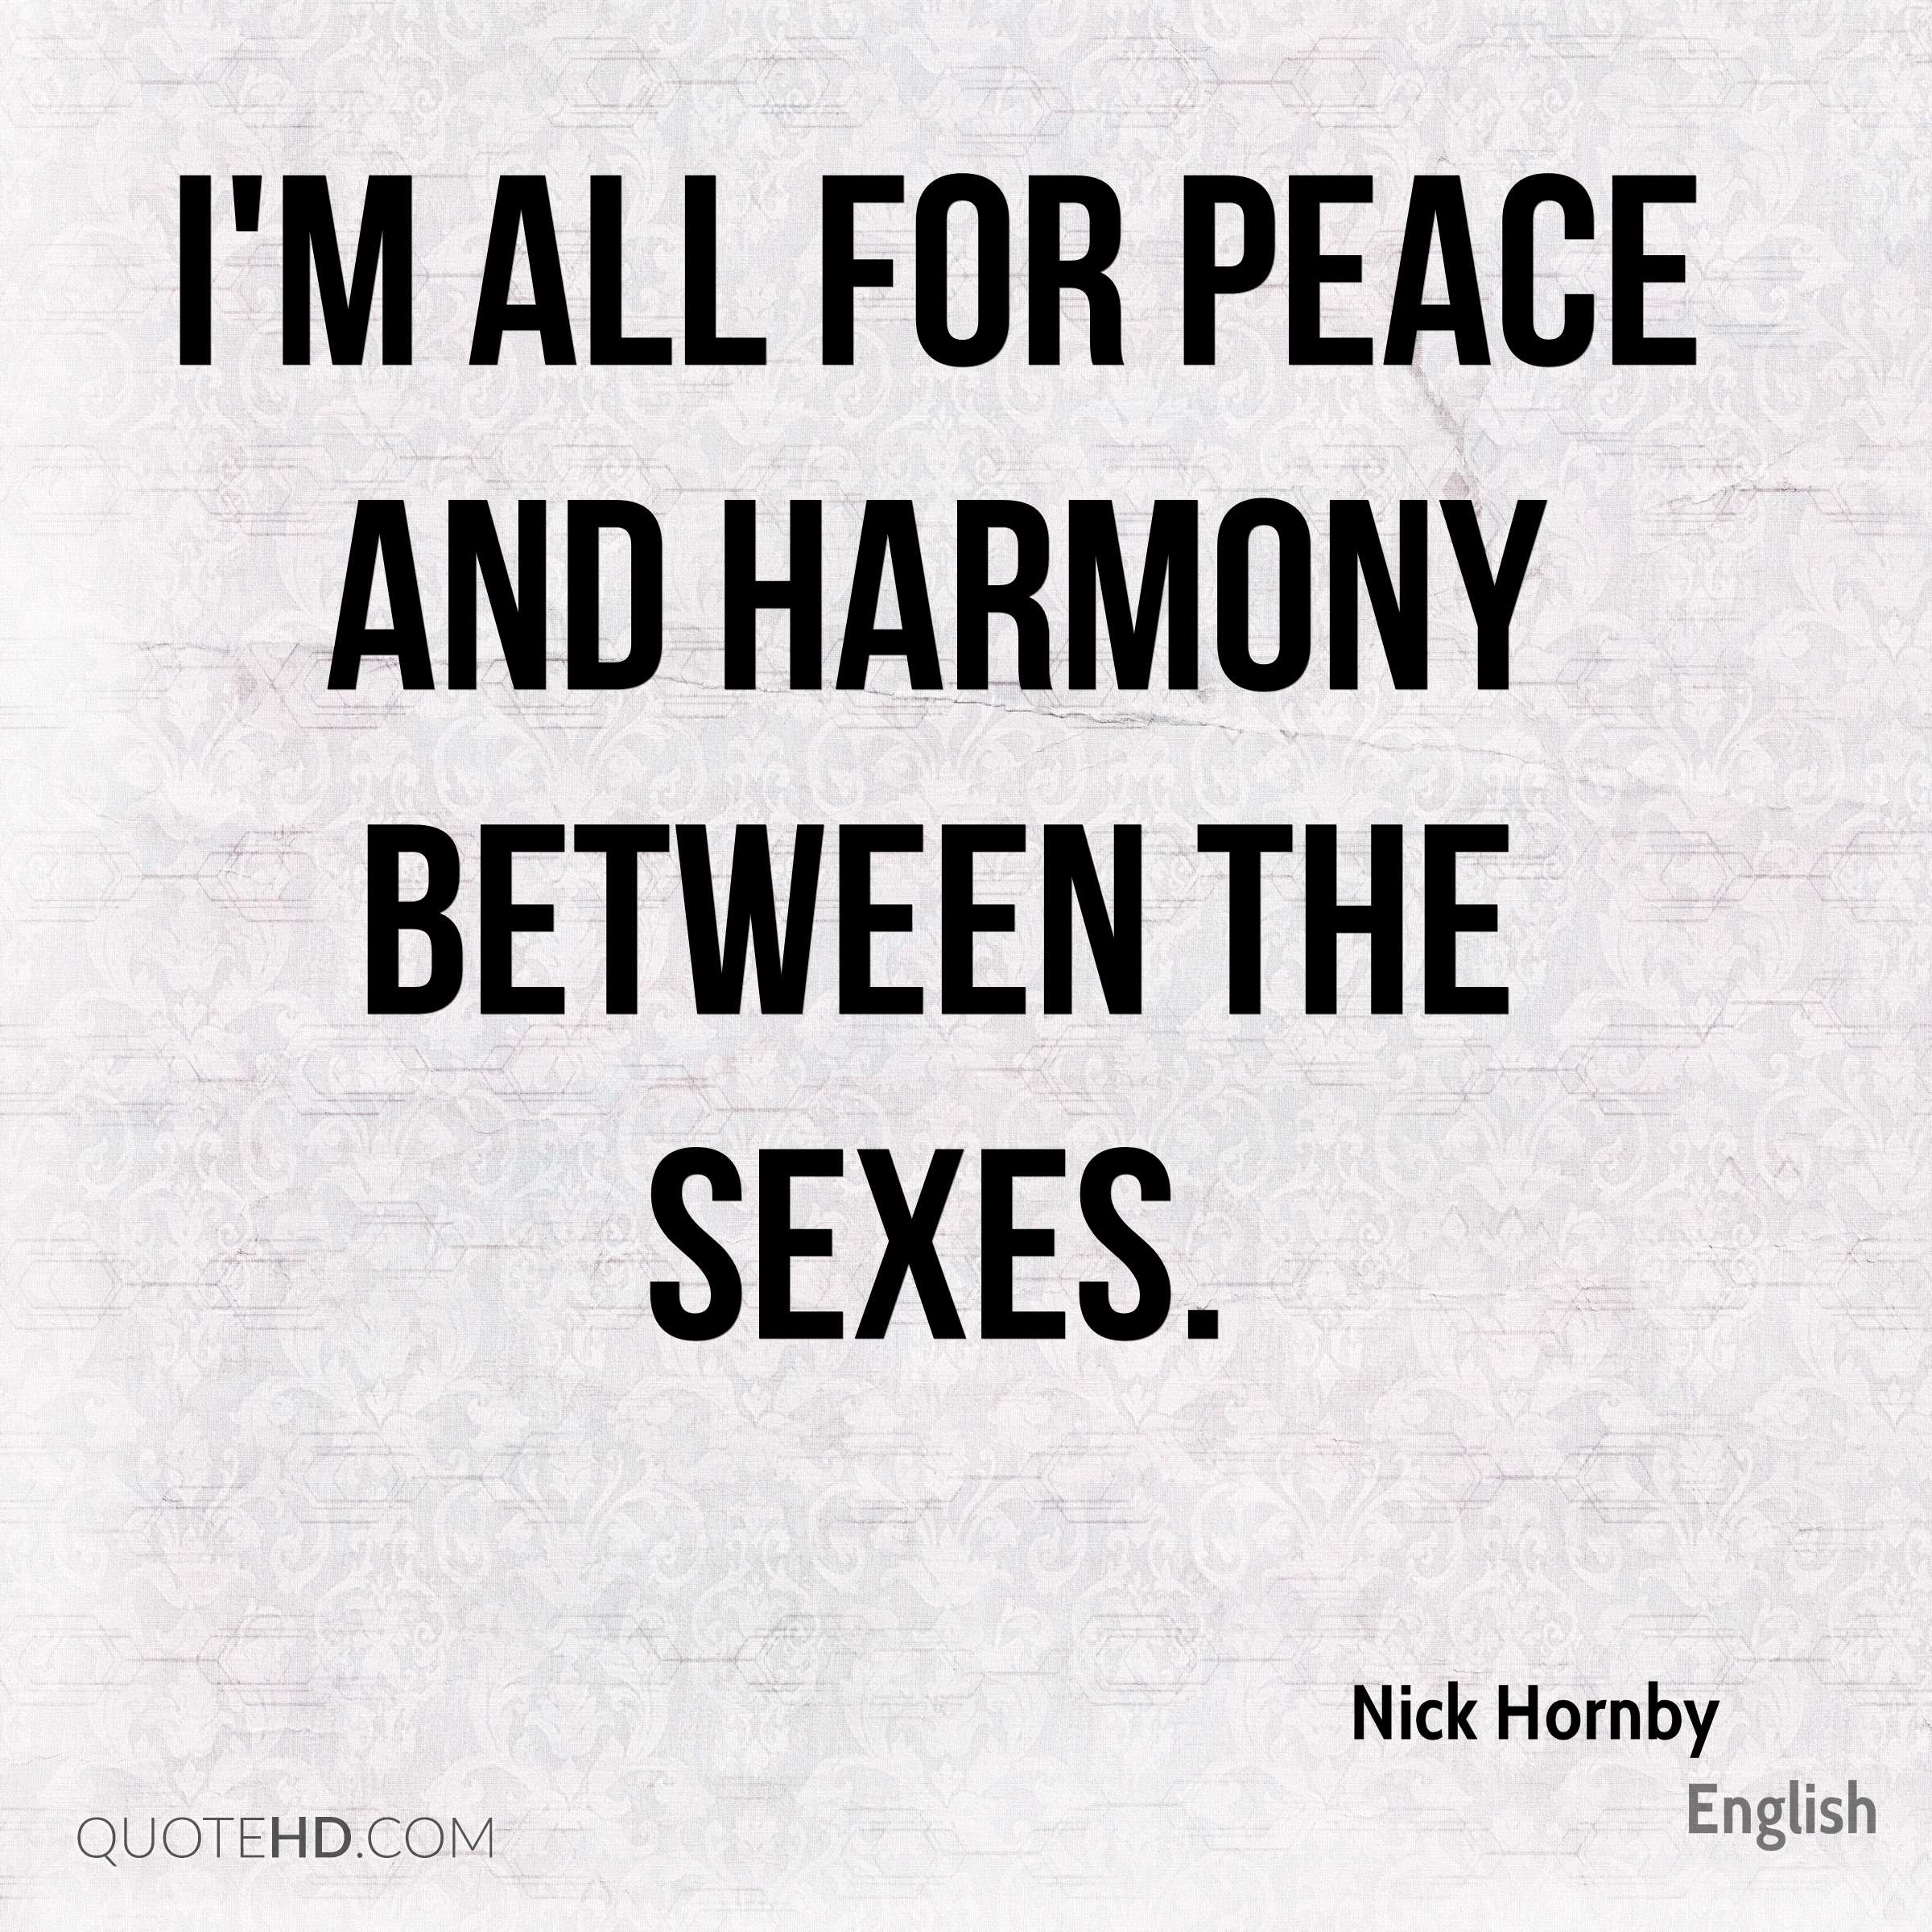 I'm all for peace and harmony between the sexes.